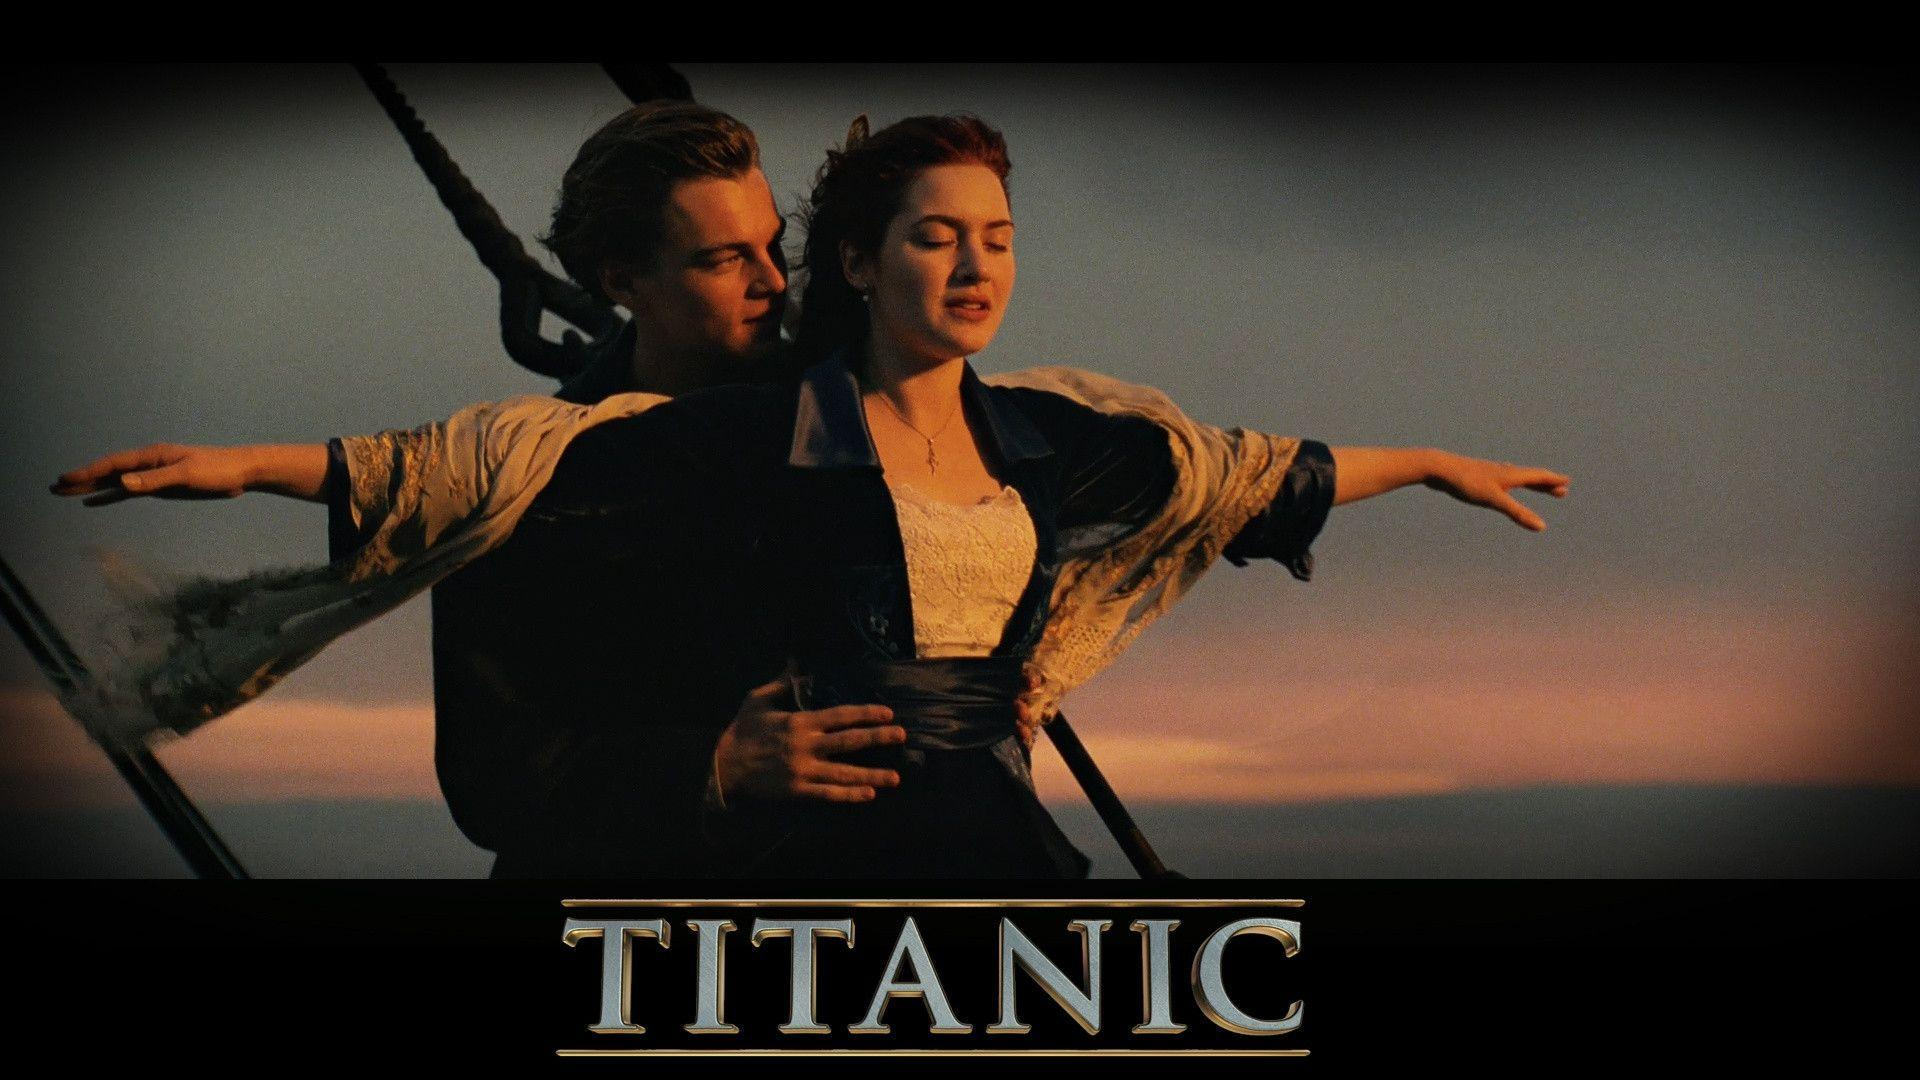 Wallpapers Tagged With TITANIC | TITANIC HD Wallpapers | Page 1